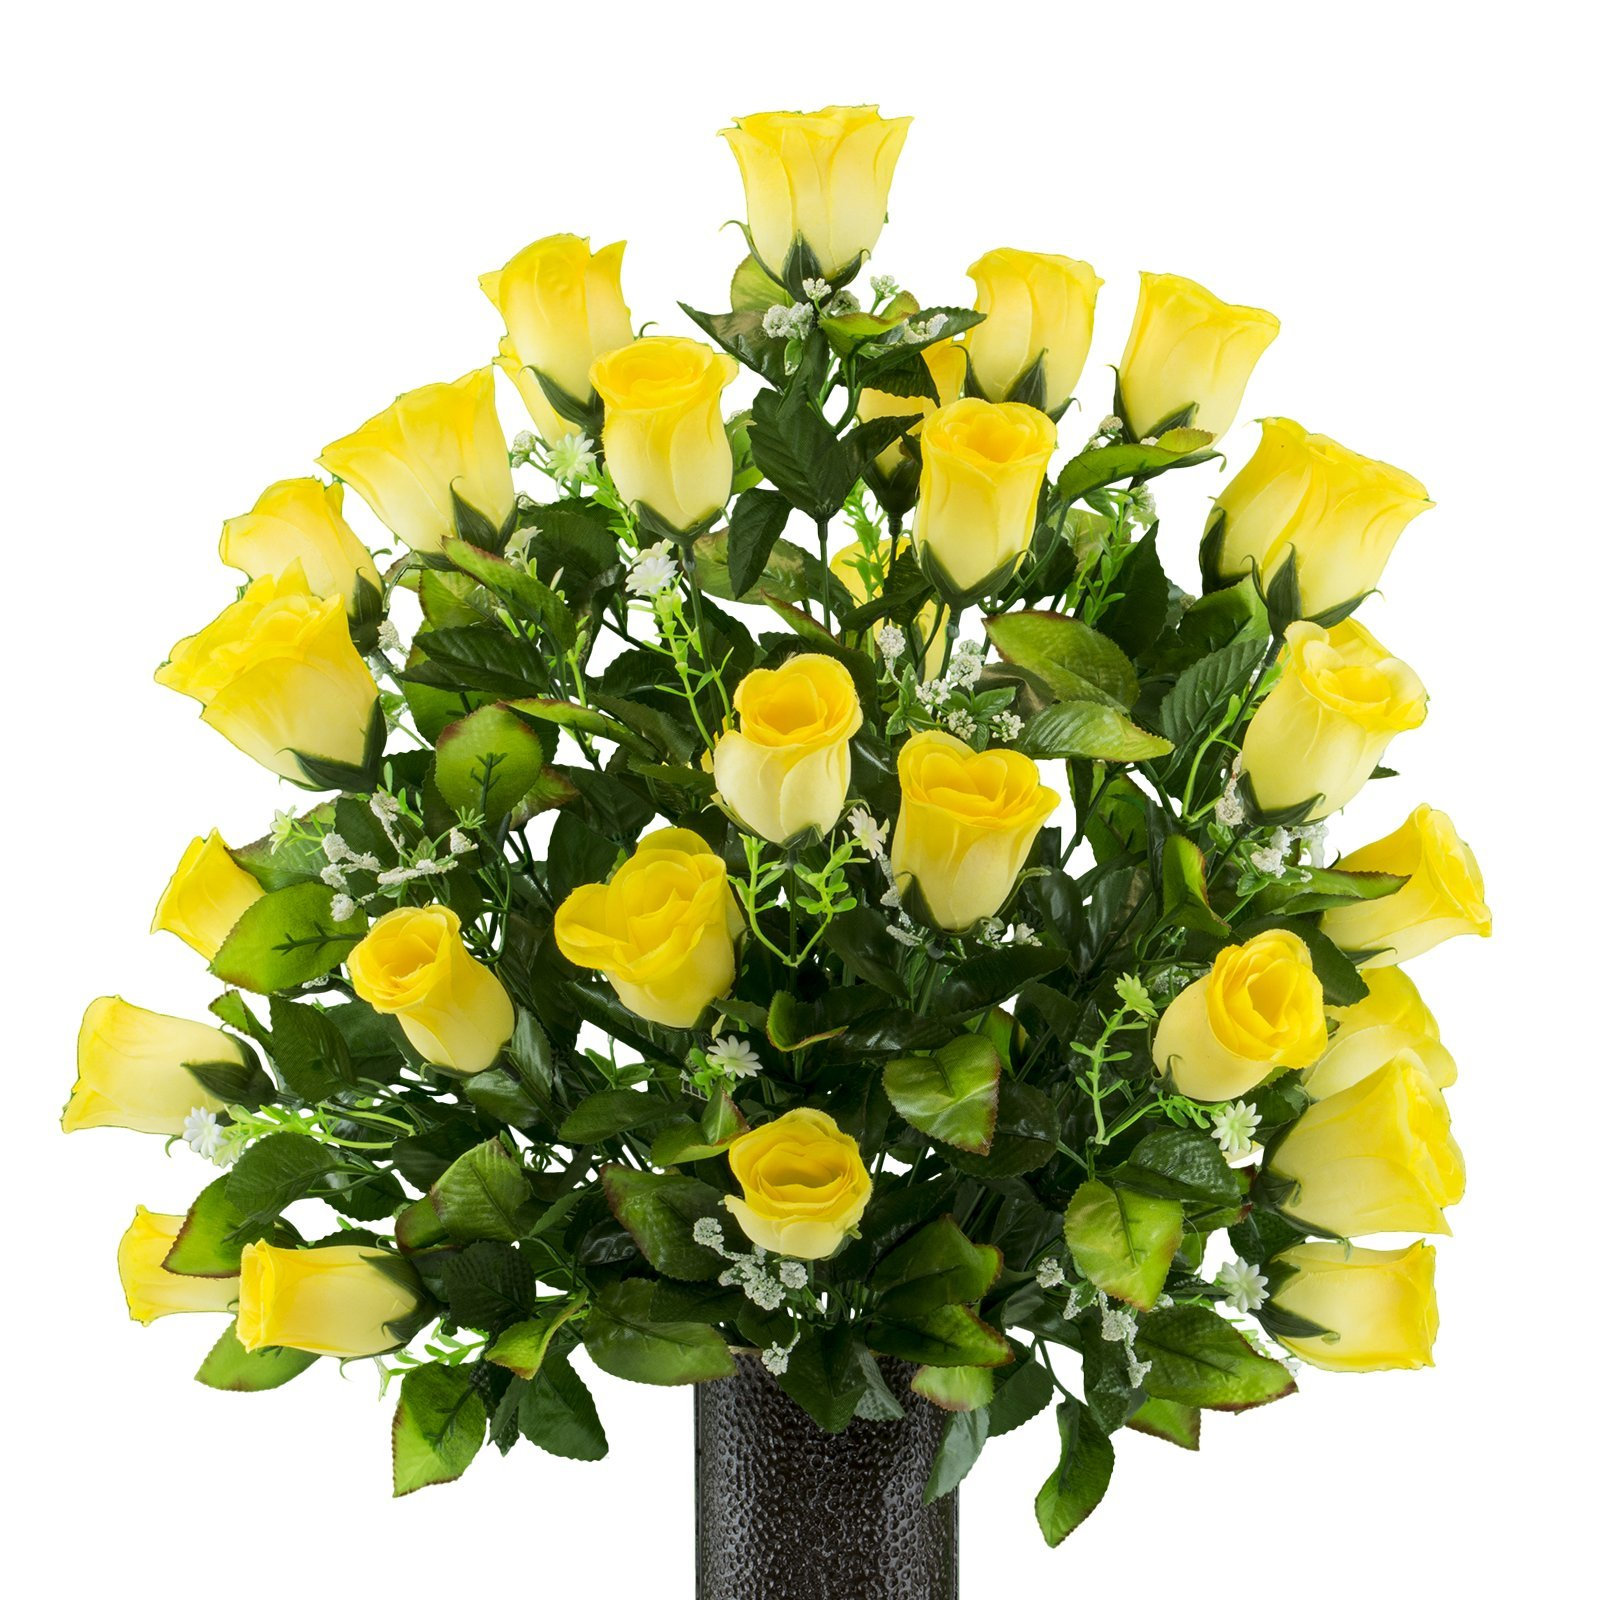 Two-Tone-Yellow-Rose-featuring-the-Stay-In-The-Vase-DesignC-Flower-Holder-MD2178